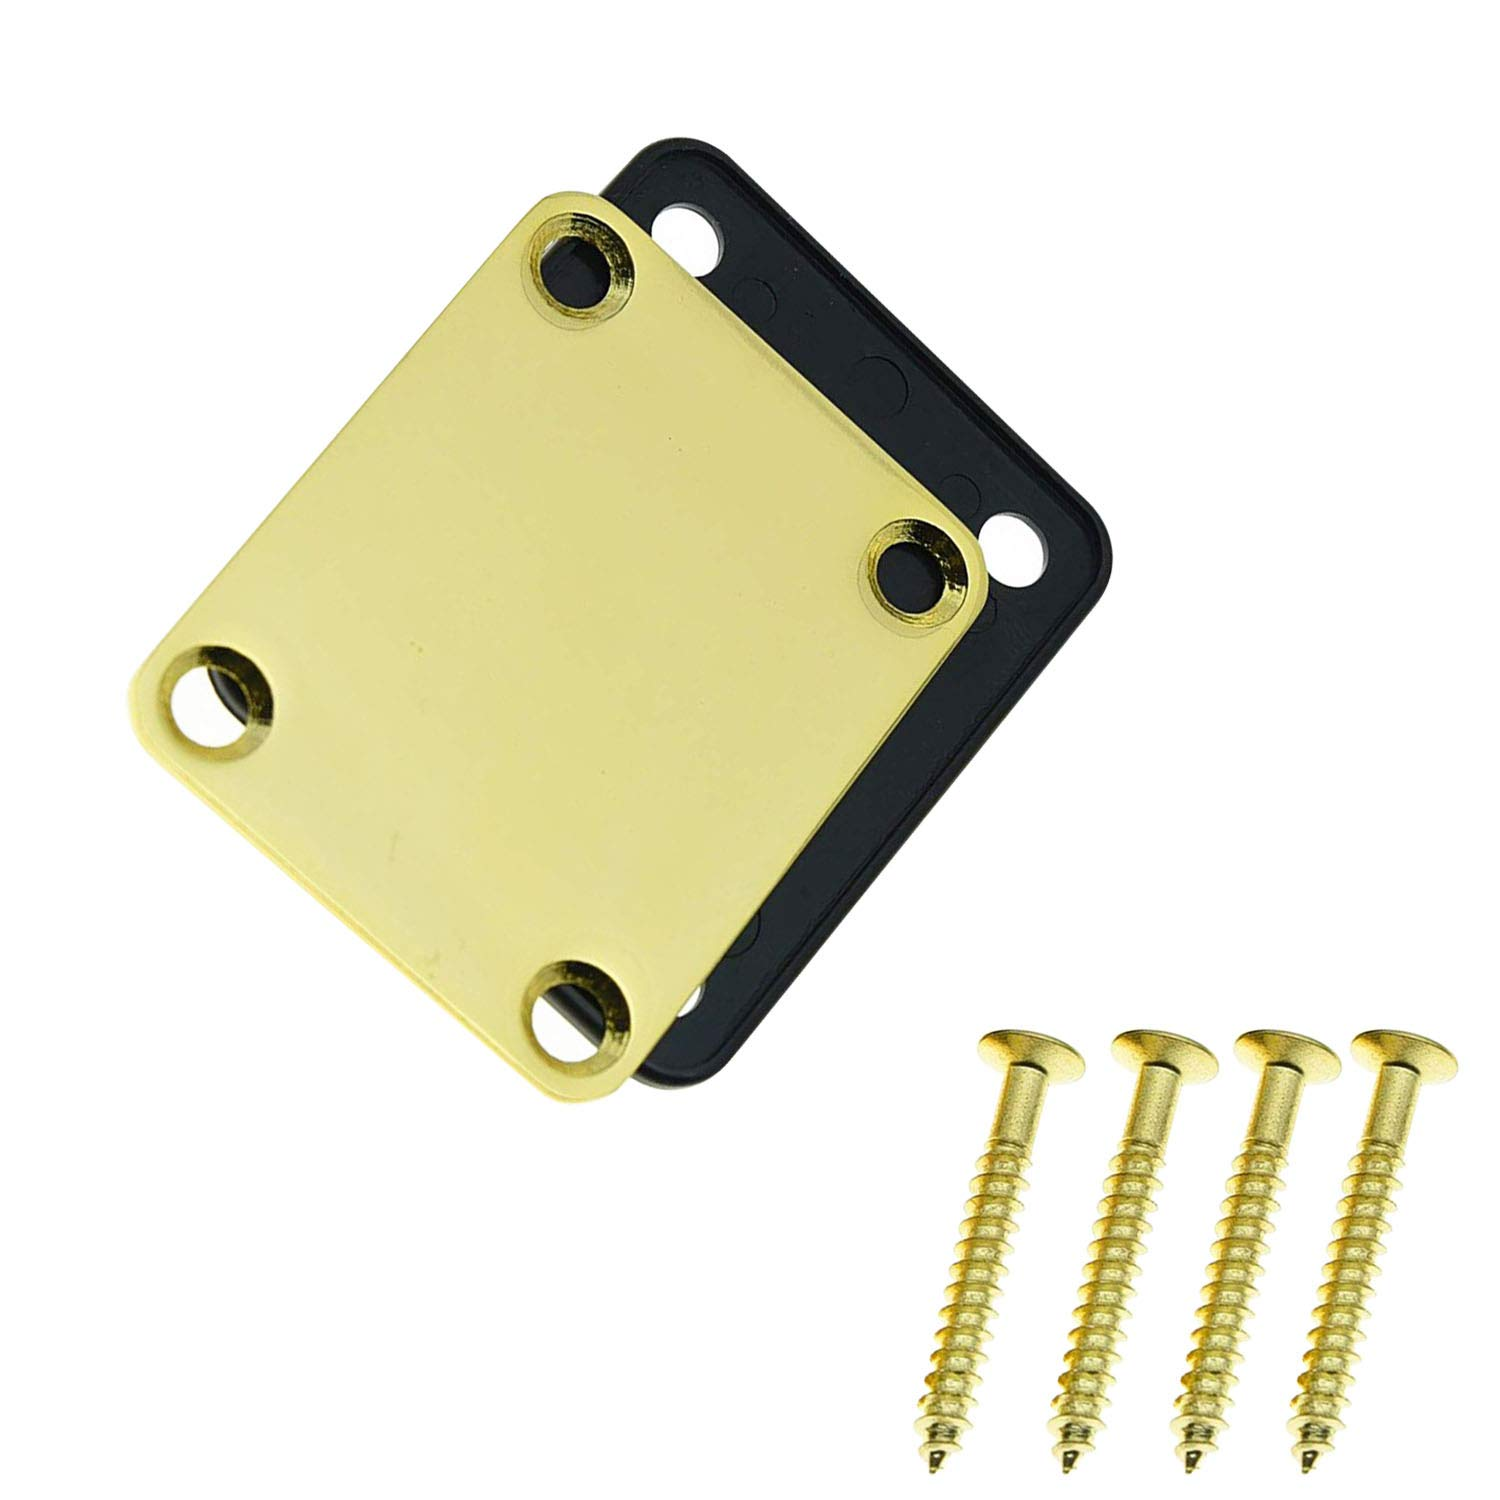 1 Set Electric Guitar Neck Plate with Screws for Strat Tele Guitar Precision,Jazz Bass Replacement 61bqpUmJH0L